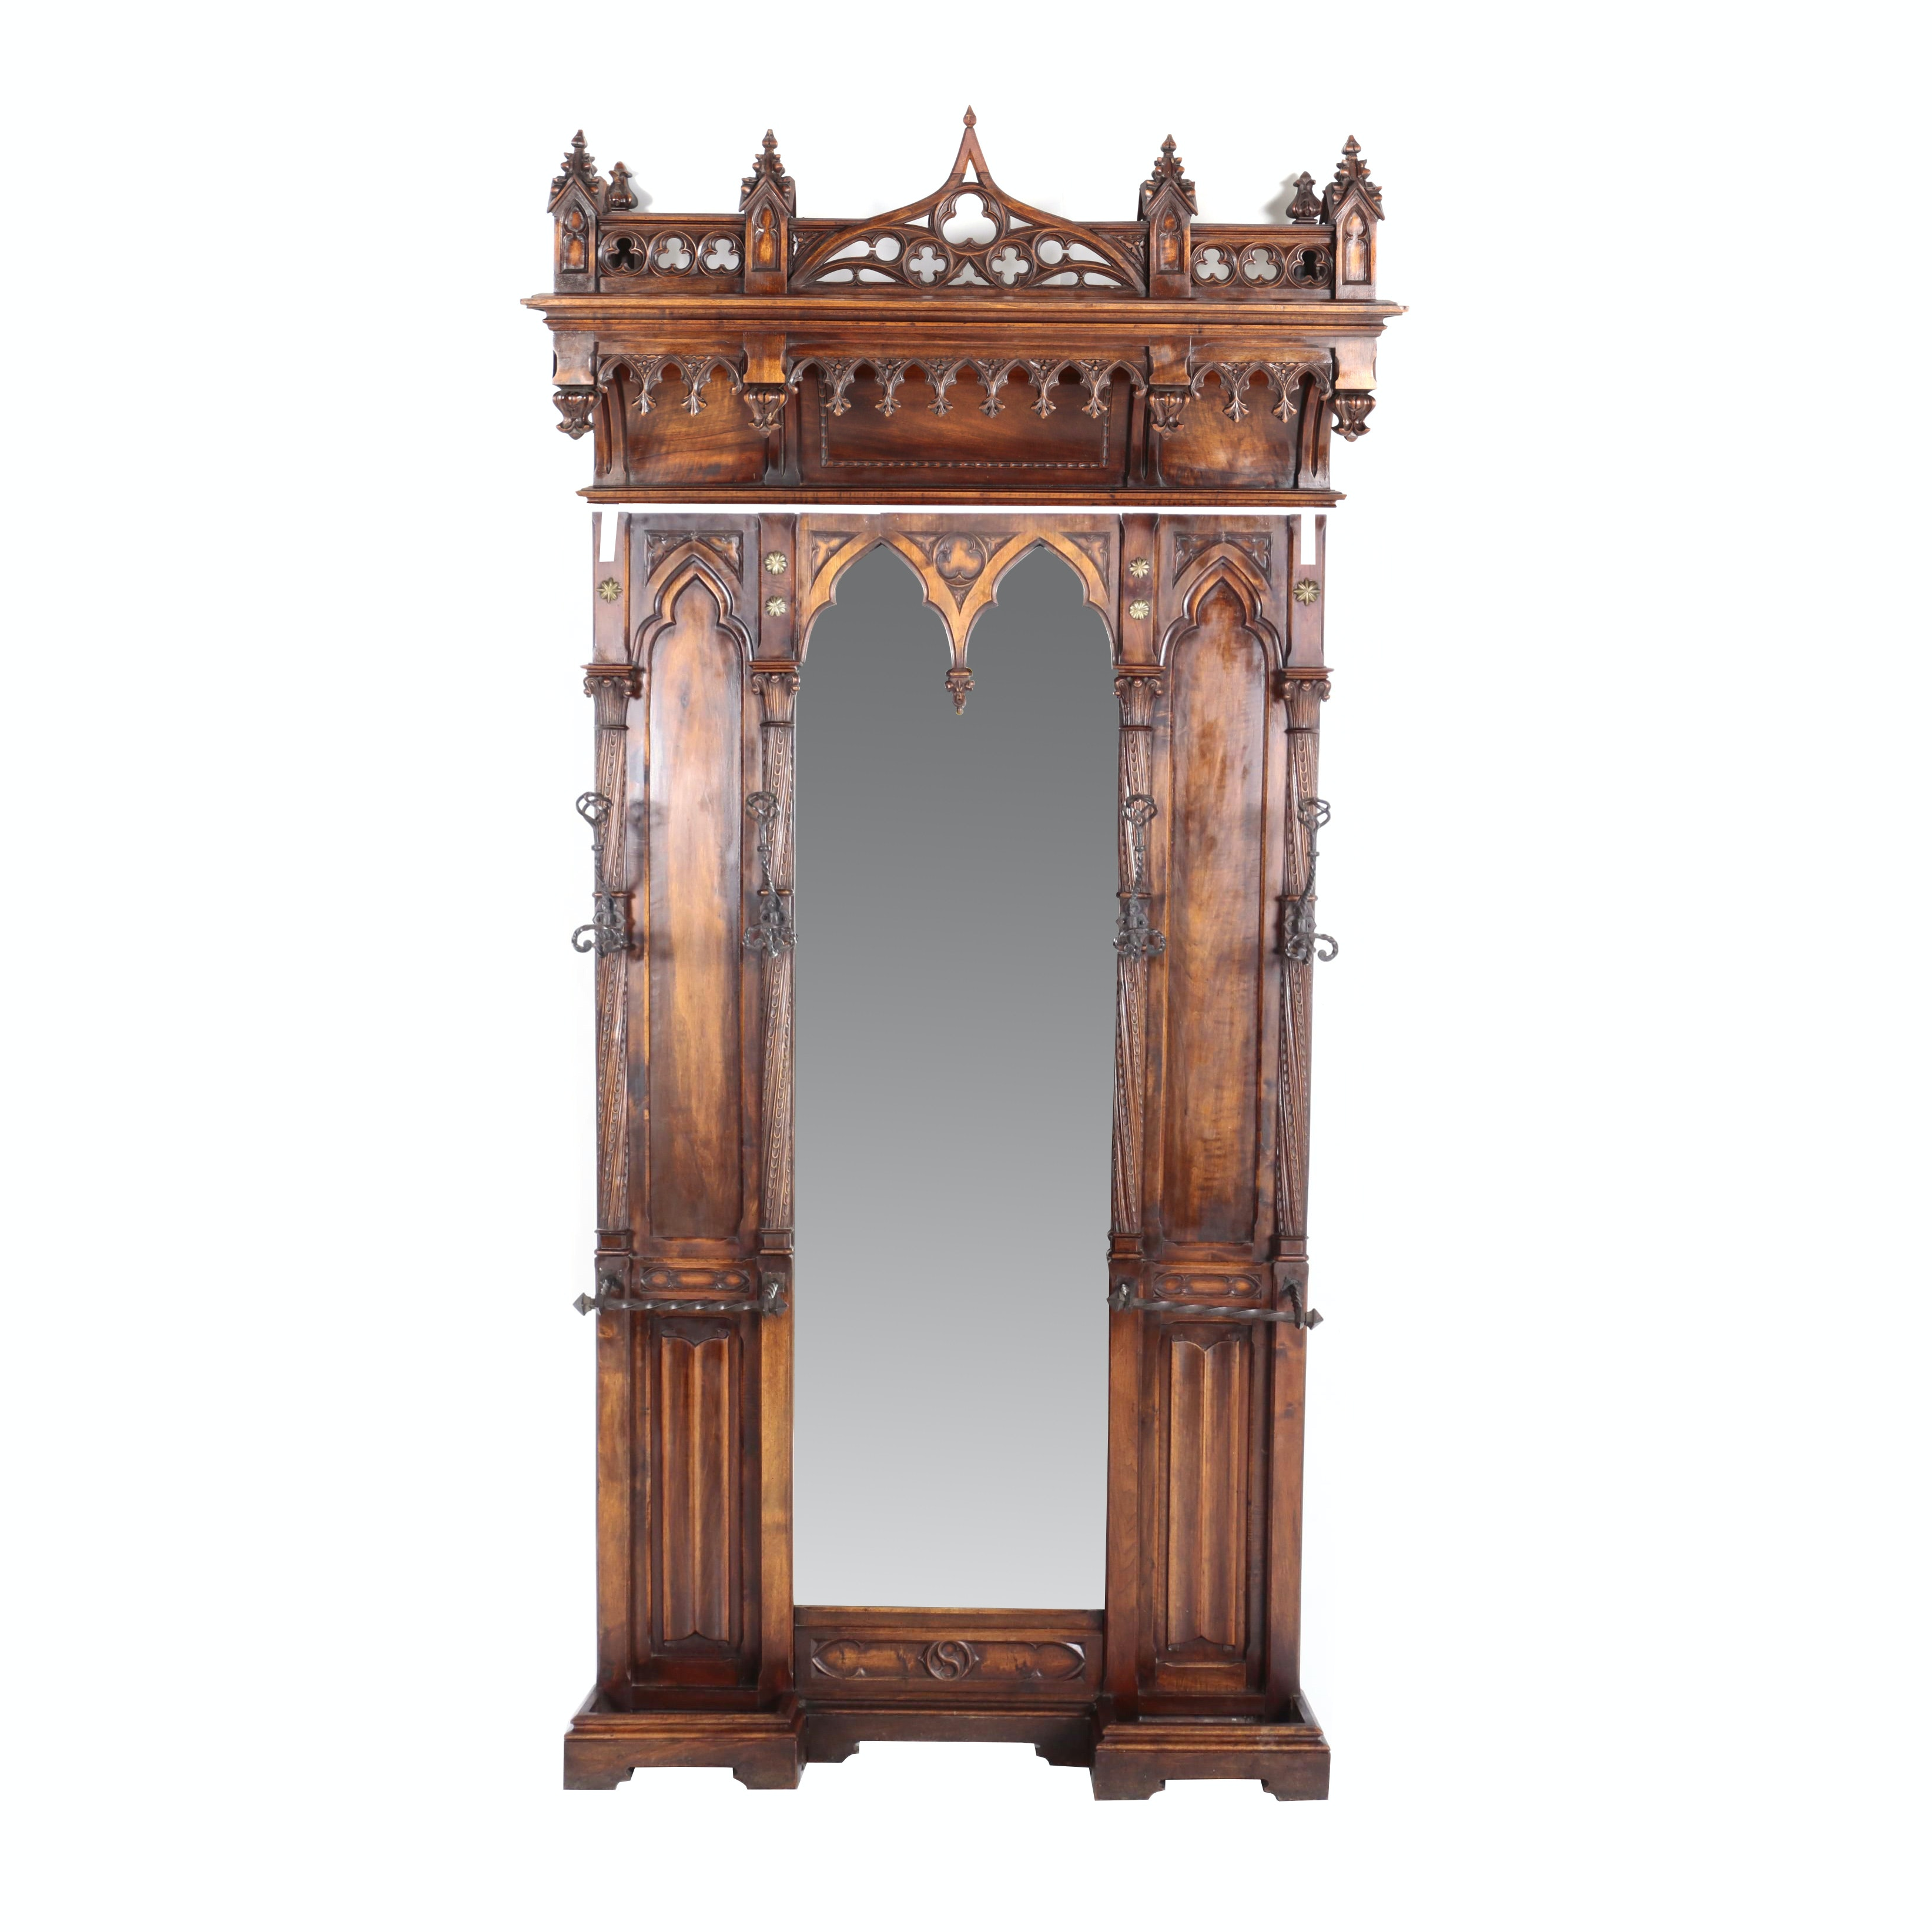 French Gothic Revival Brass- and Iron-Mounted Walnut Hall Stand